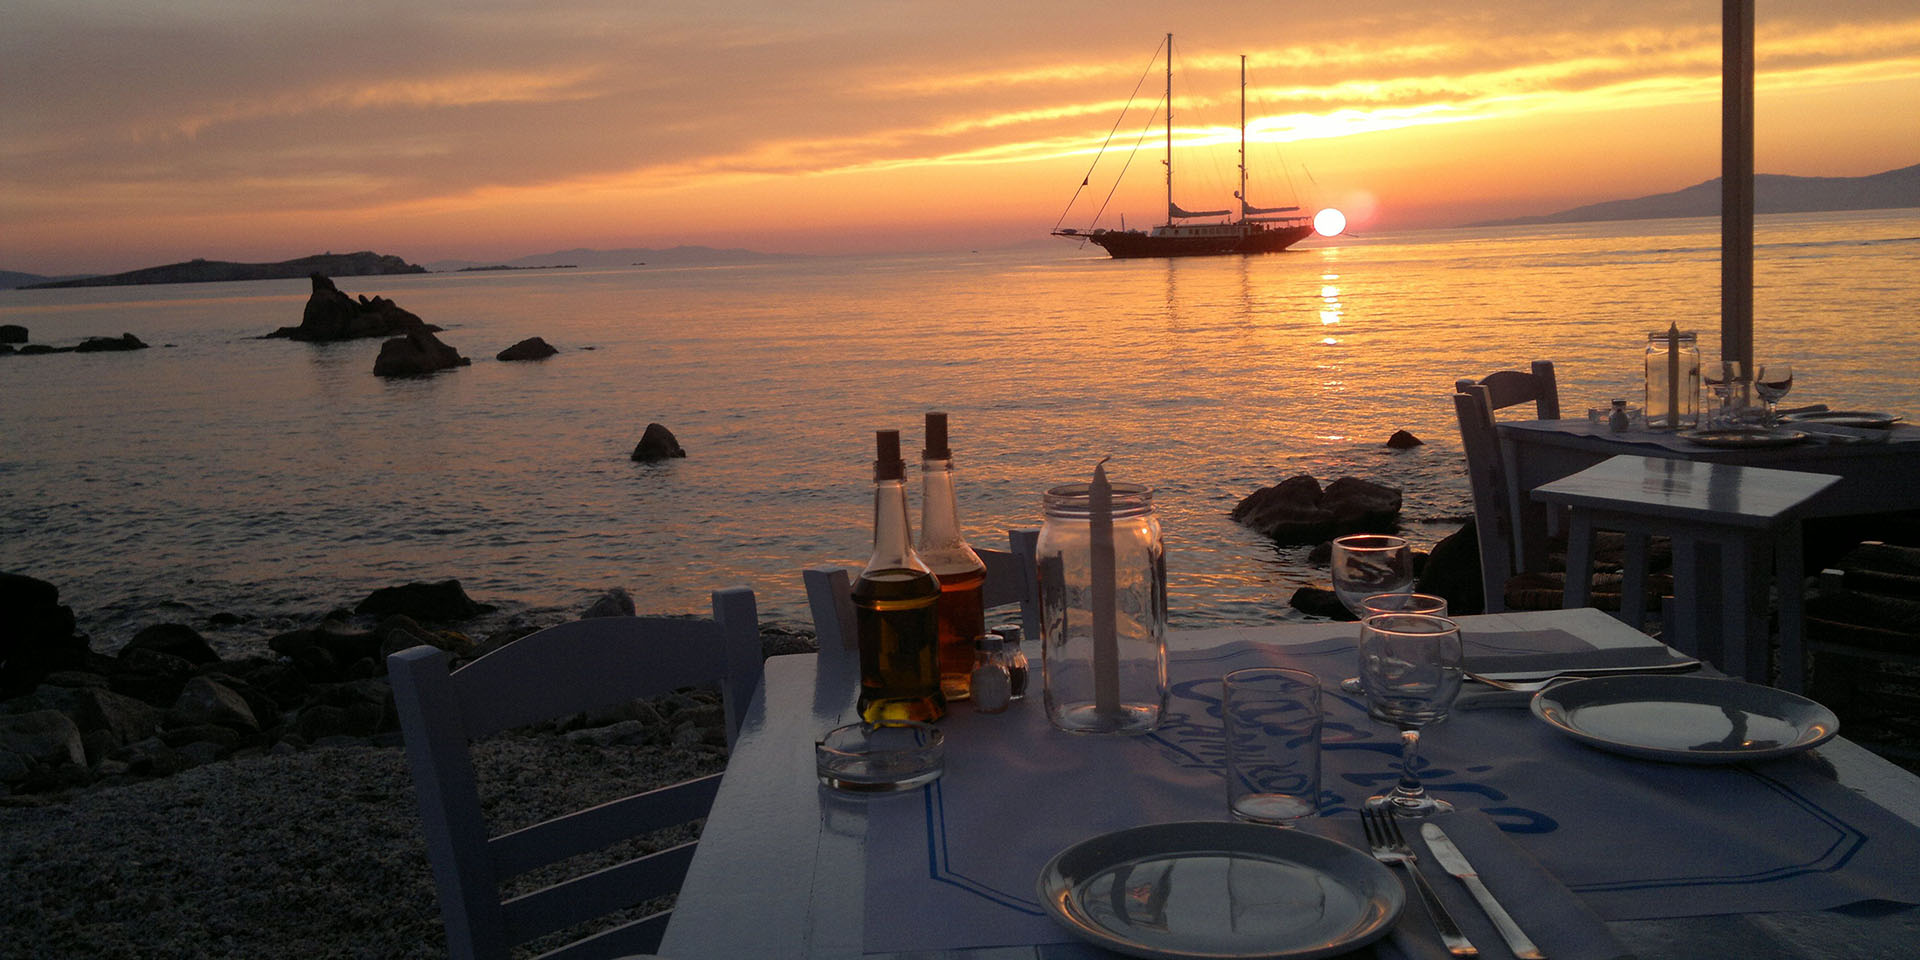 Best Place for Sunset Dinner in Mykonos Island